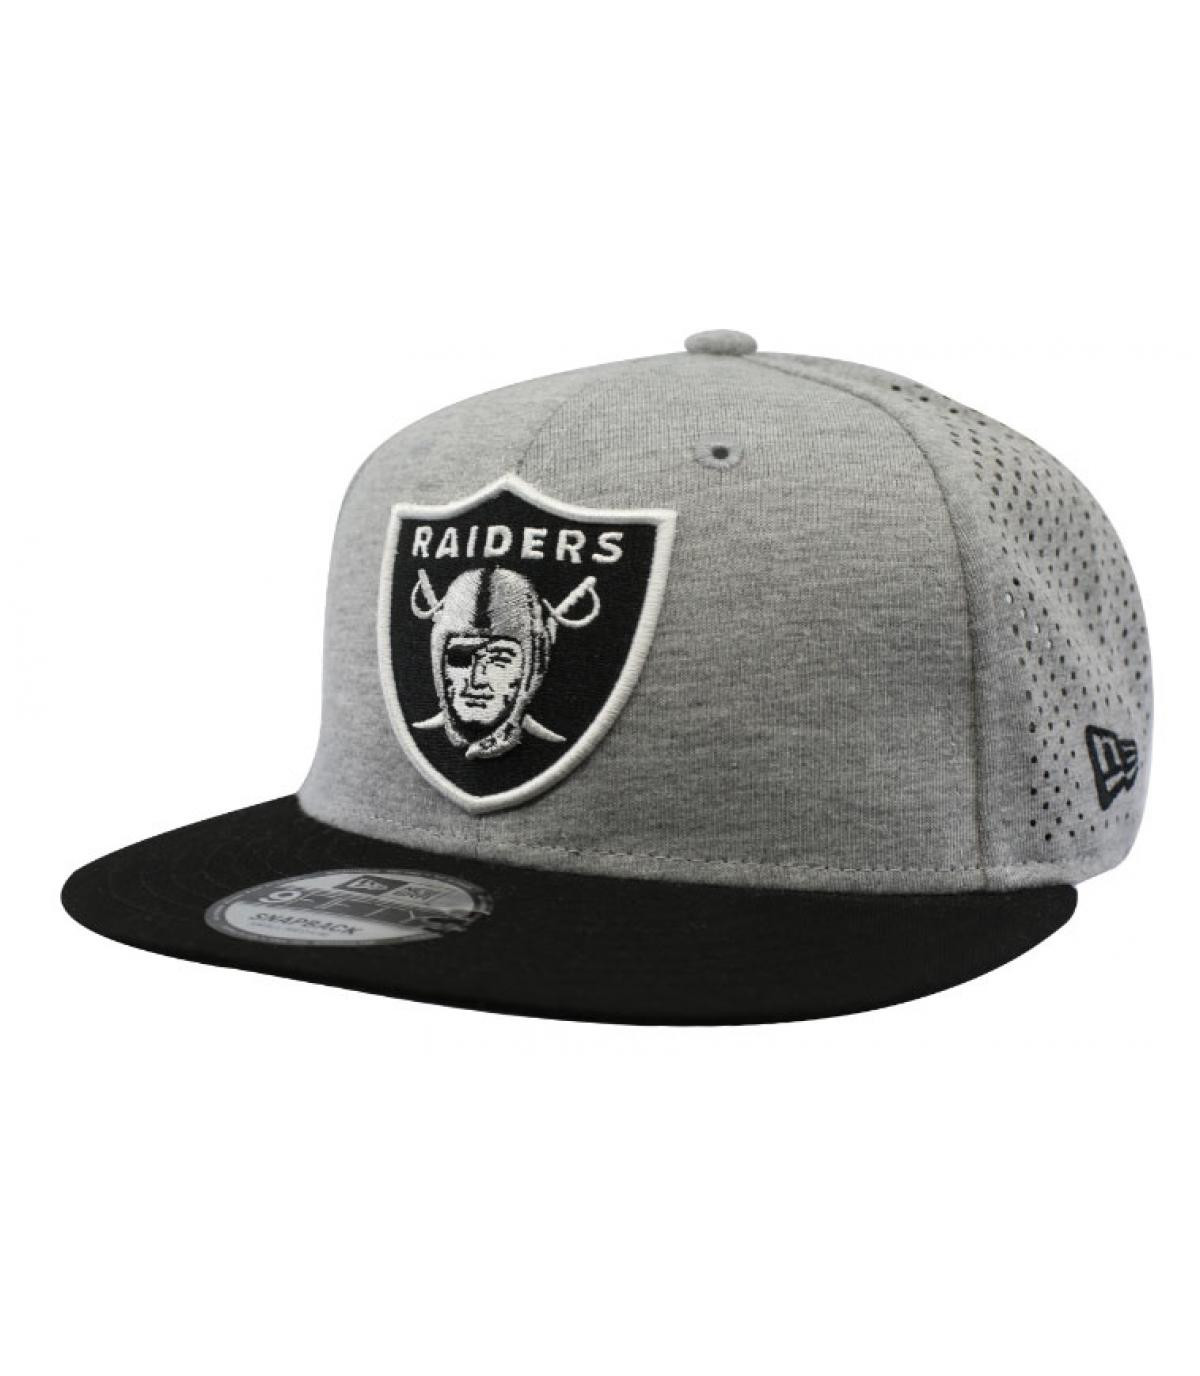 Détails Shadow Tech 9Fifty Raiders - image 2